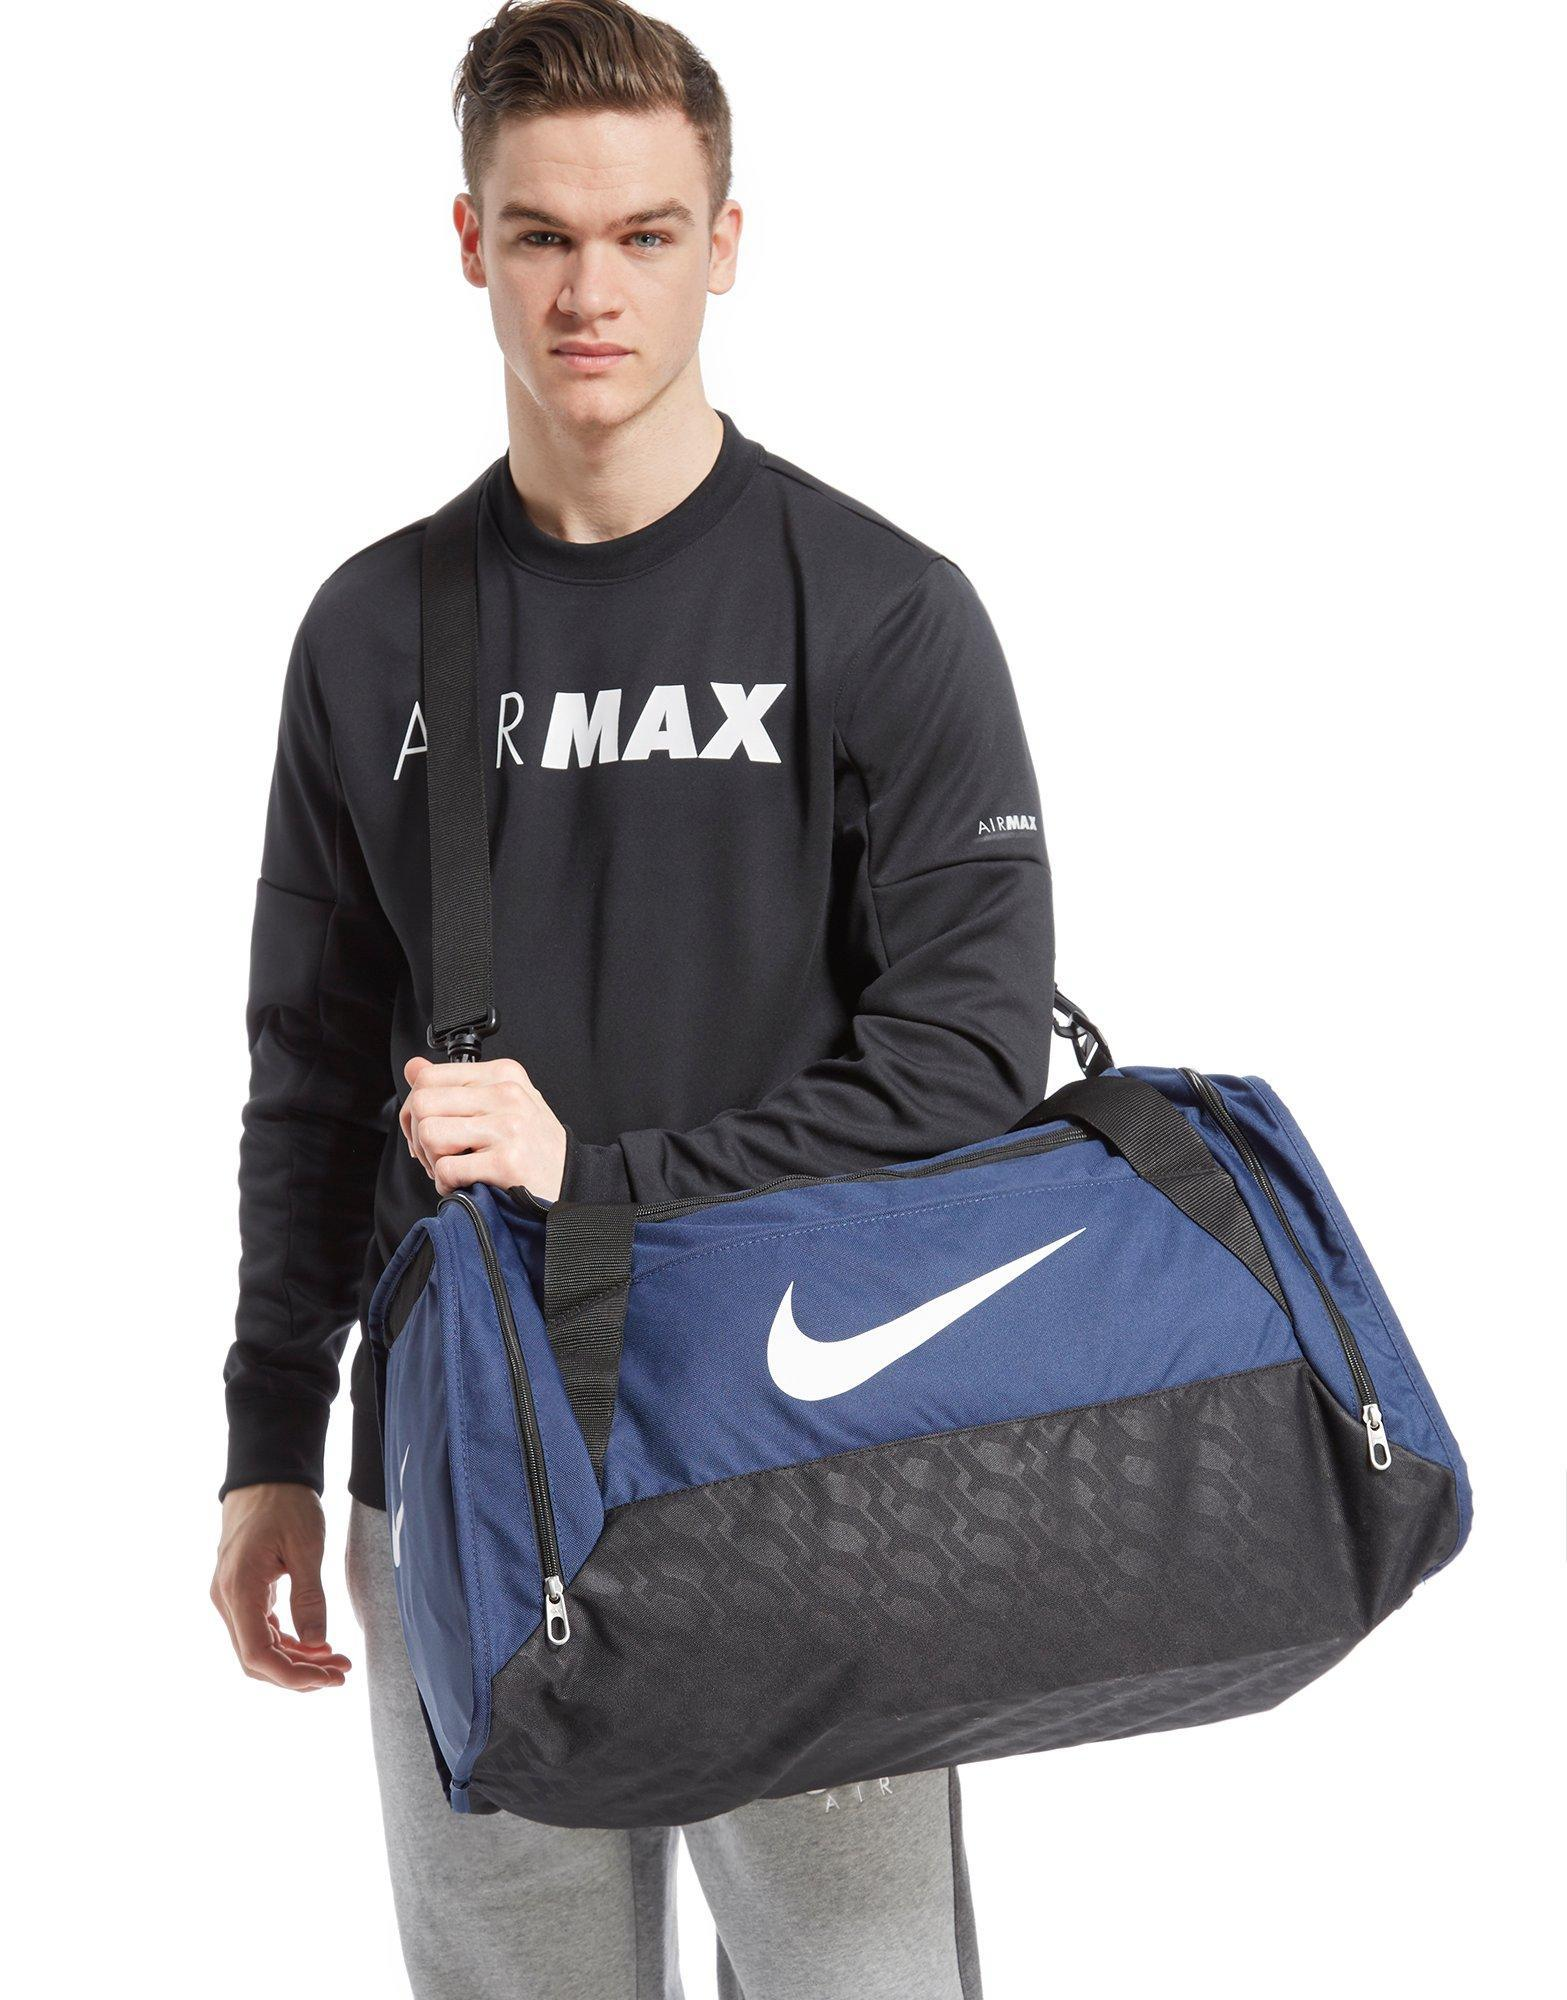 62037a3c29a7 Nike Brasilia Medium Duffel Bag